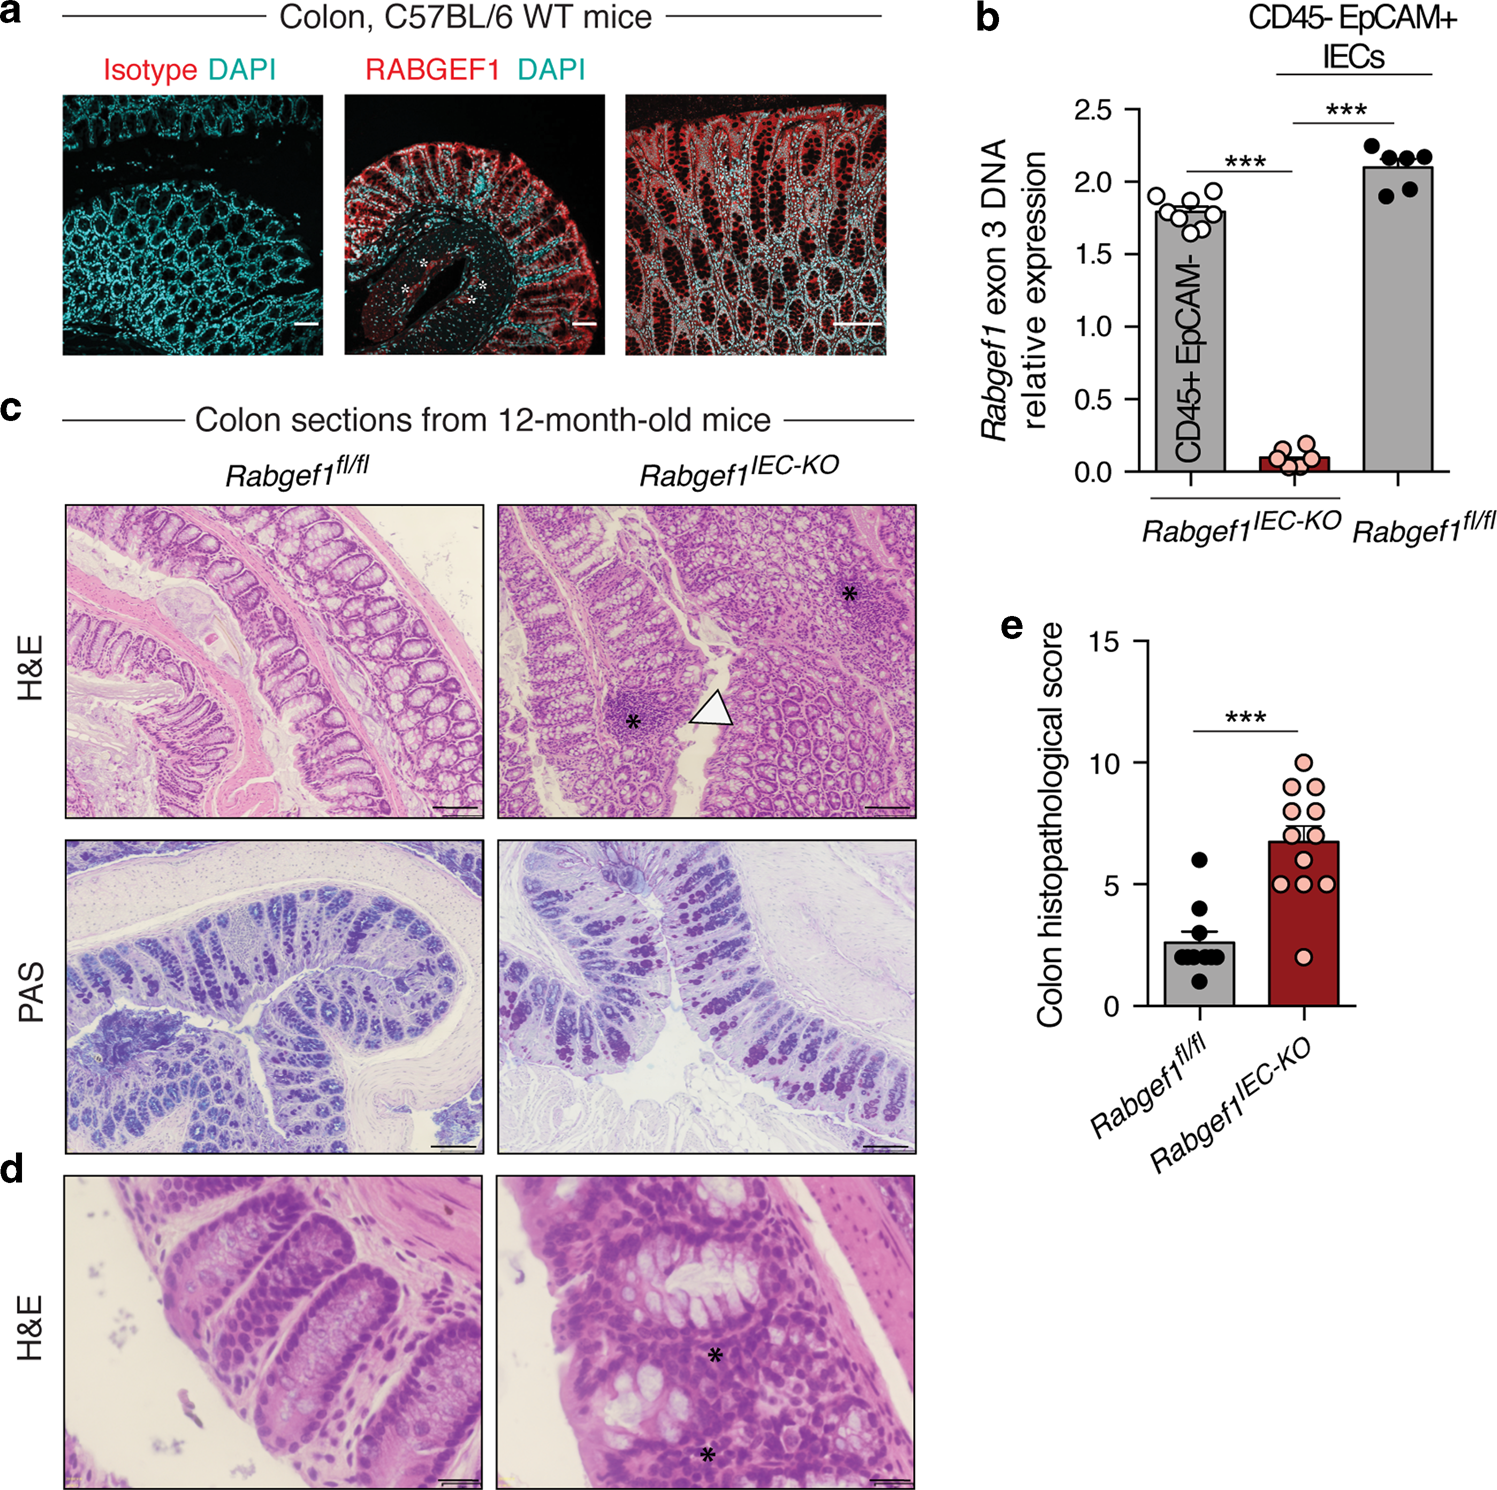 Epithelial RABGEF1 deficiency promotes intestinal inflammation by dysr